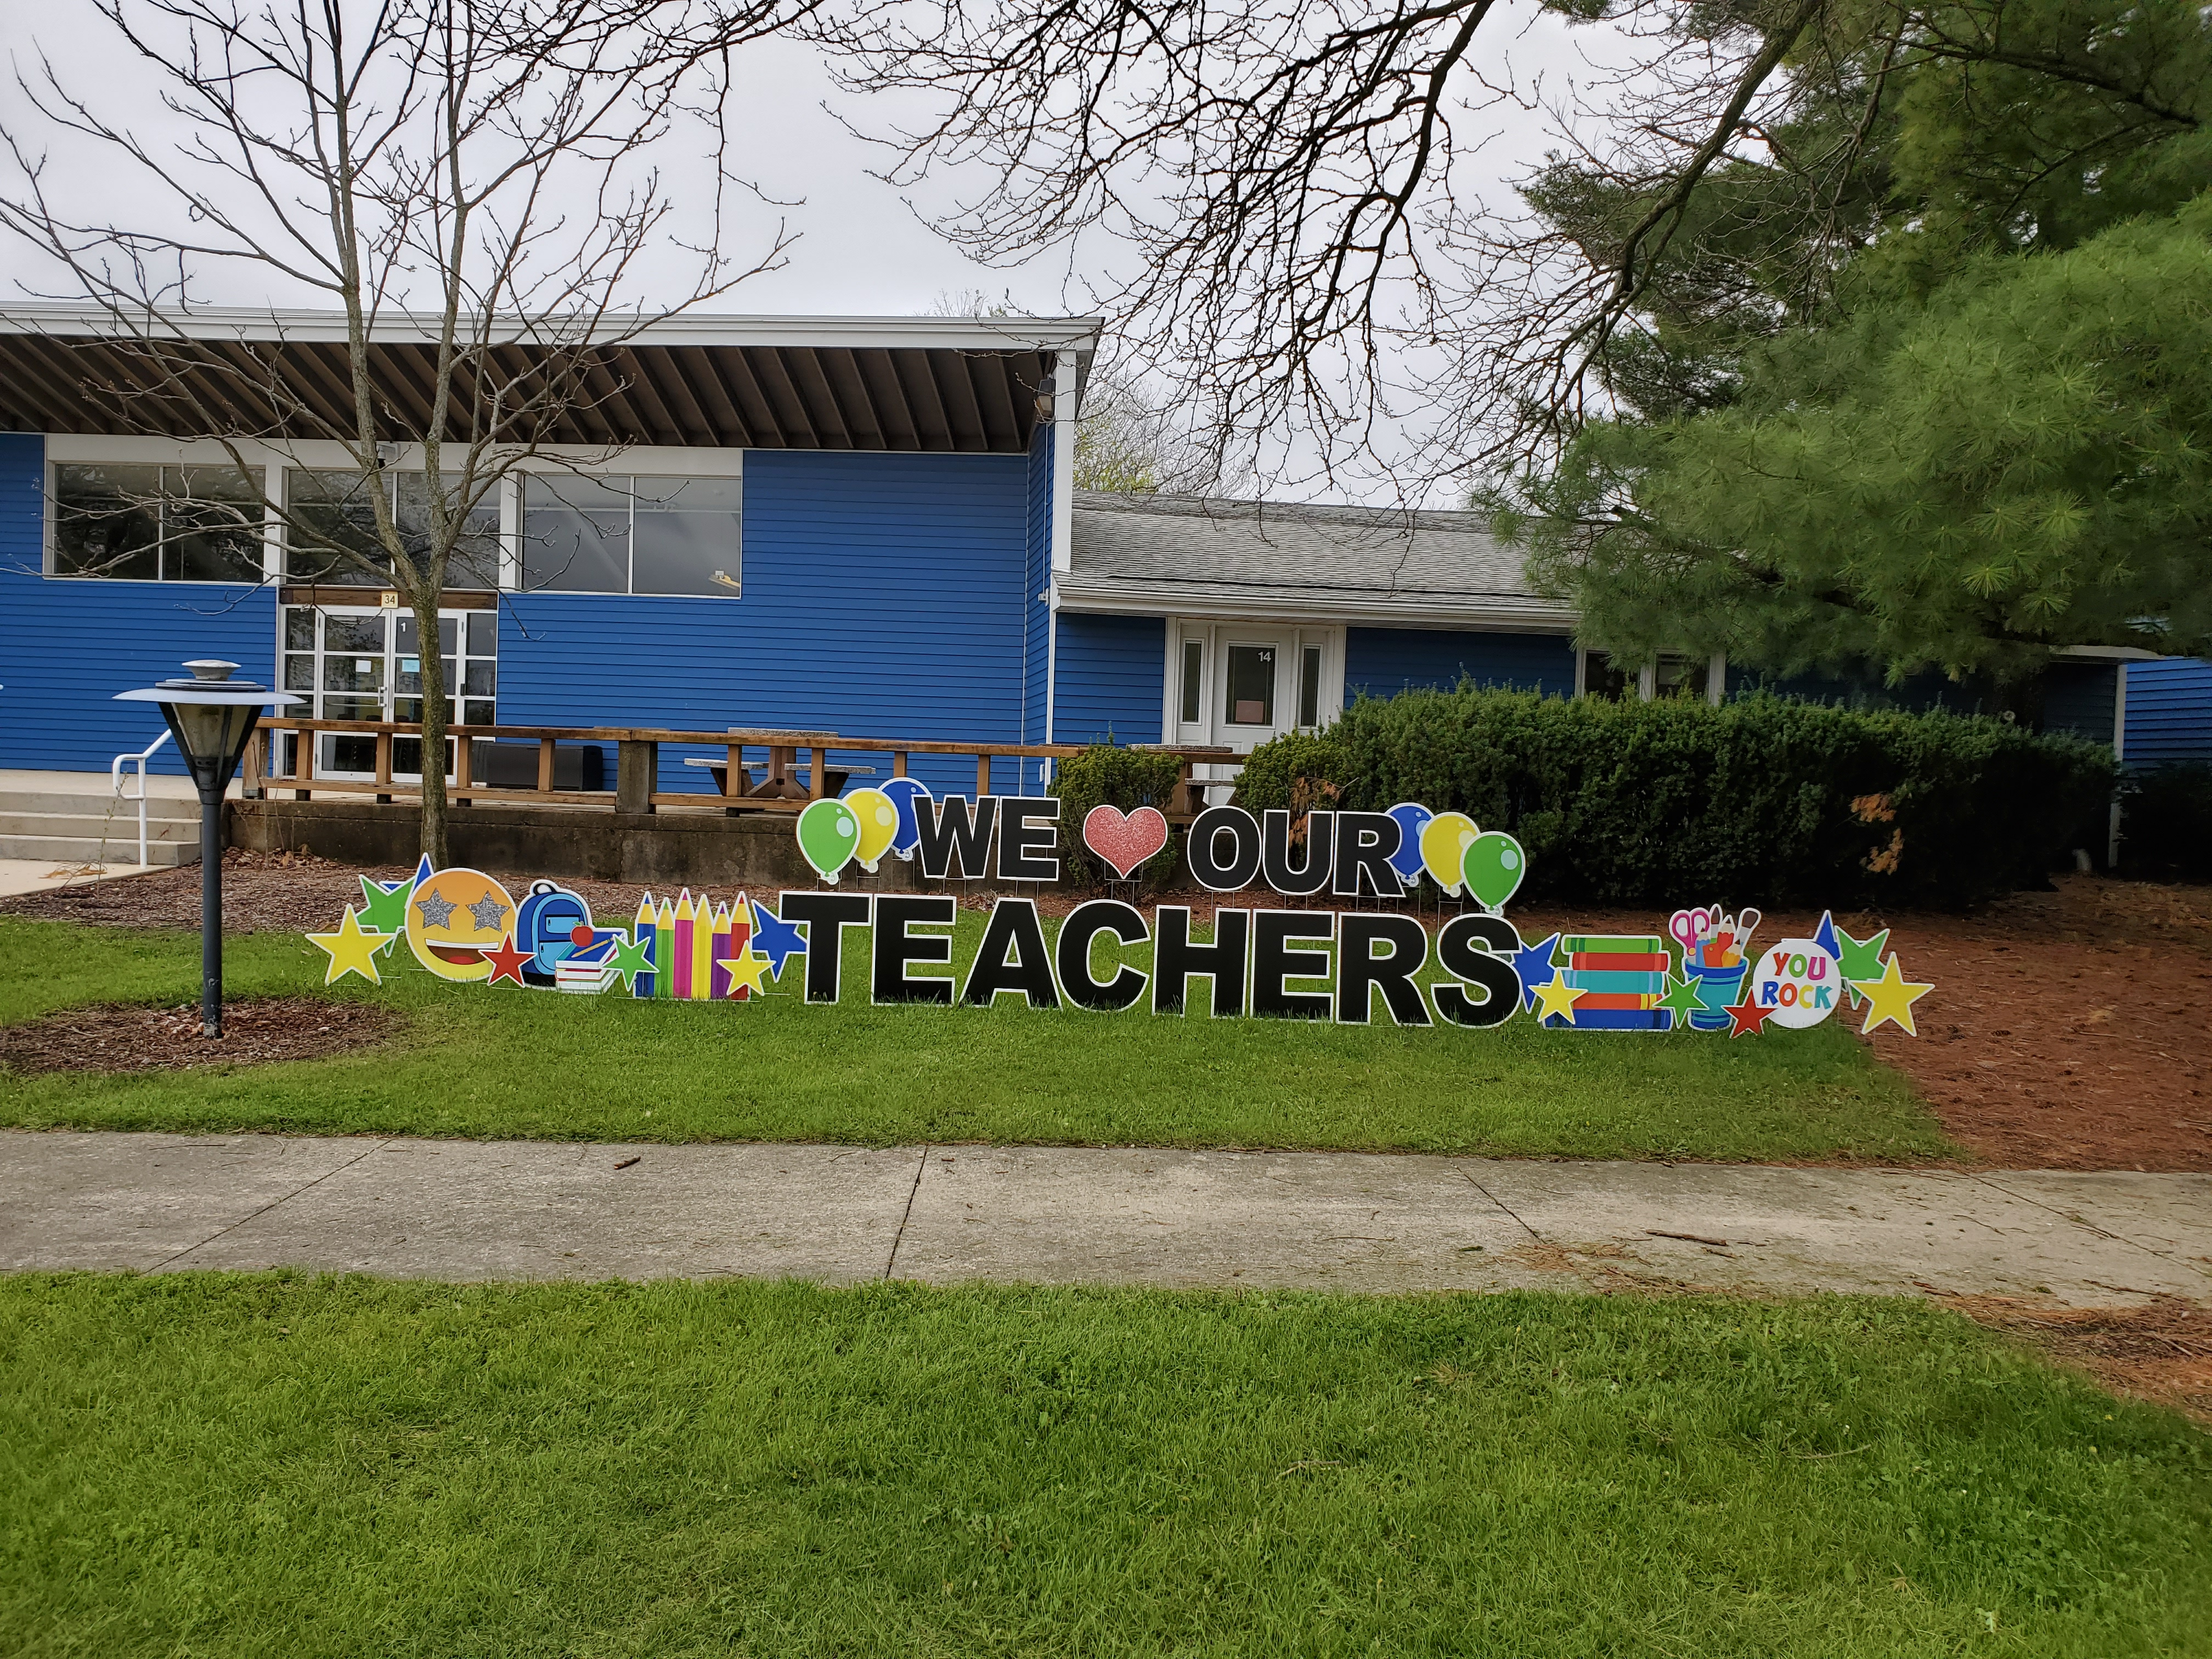 """(1/2) On Tuesday, May 7, some kind individuals posted a """"We Love our Teachers"""" sign in front of the Fermilab Children's Center in the Village. everyday objects, lab life Photo: Julius Borchert"""